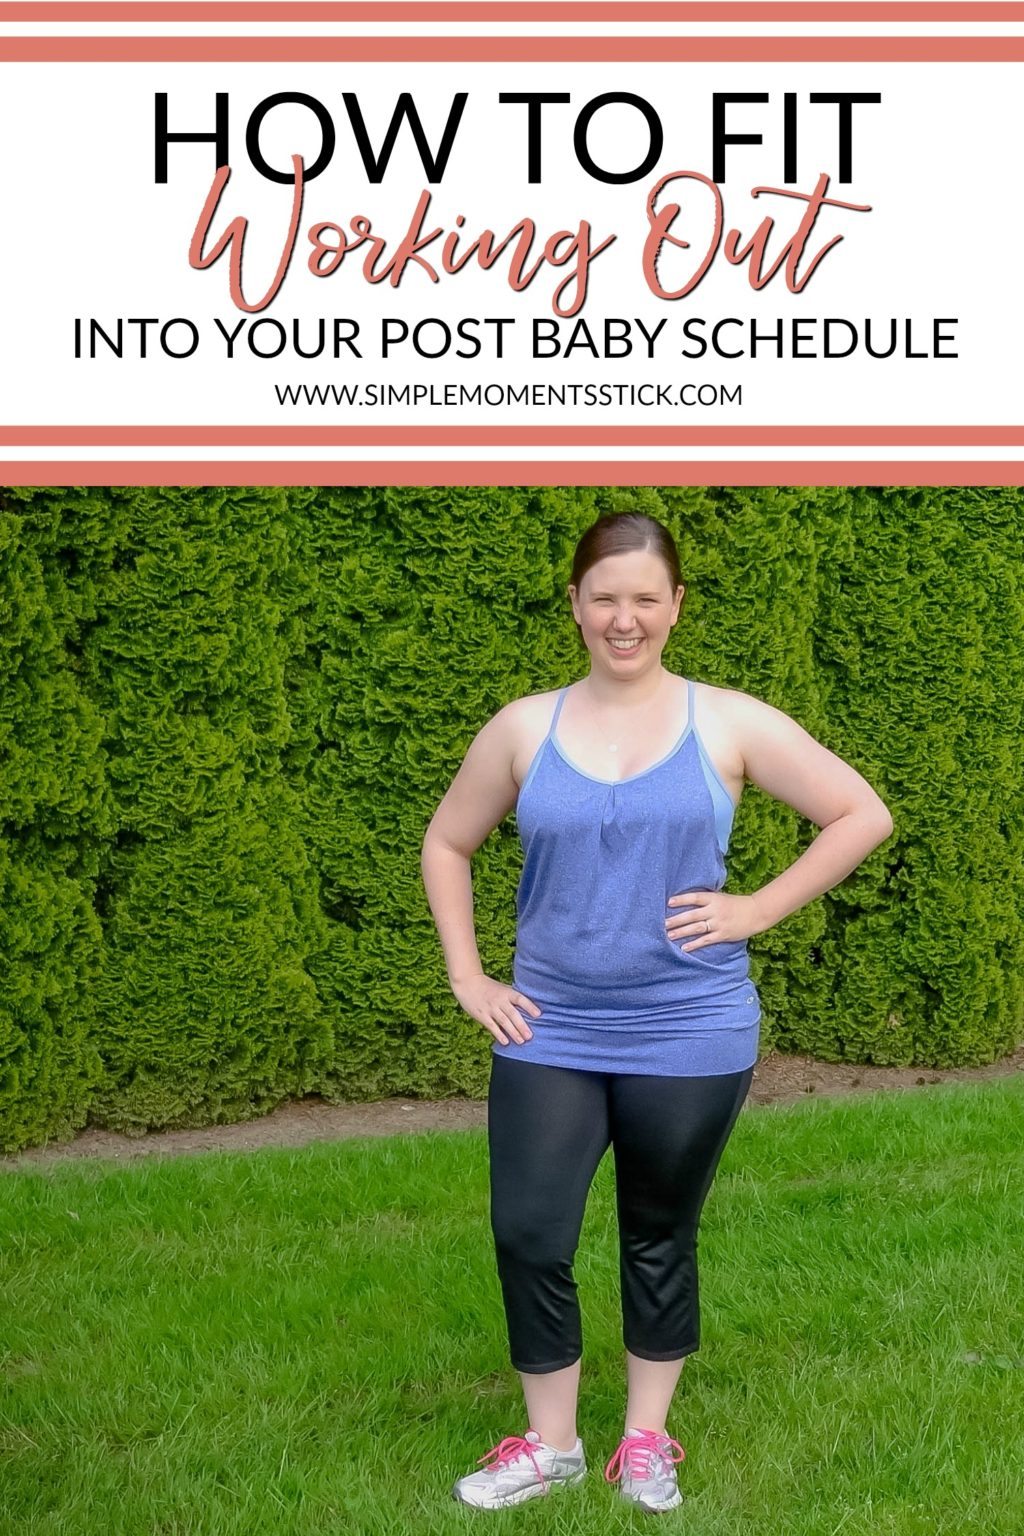 Are you wondering how to find time to work out with a baby hanging around? This post has the solutions!